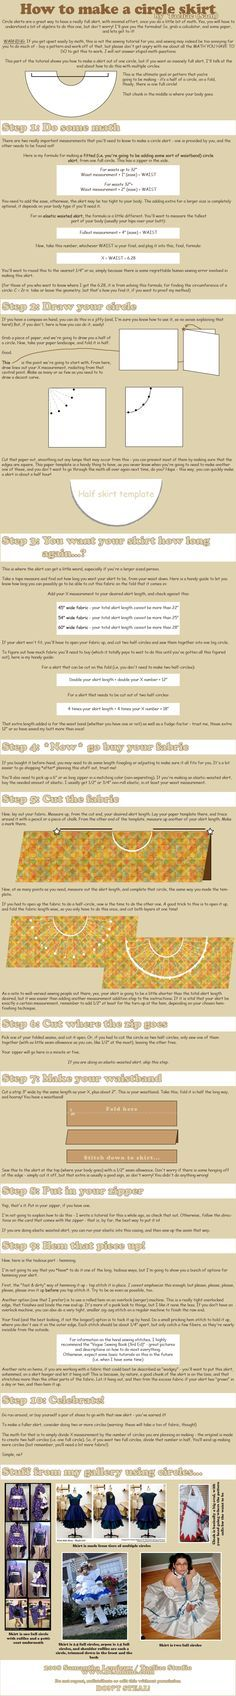 Circle skirt tutorial for cosplay. Really helps when you want a very full circle skirt